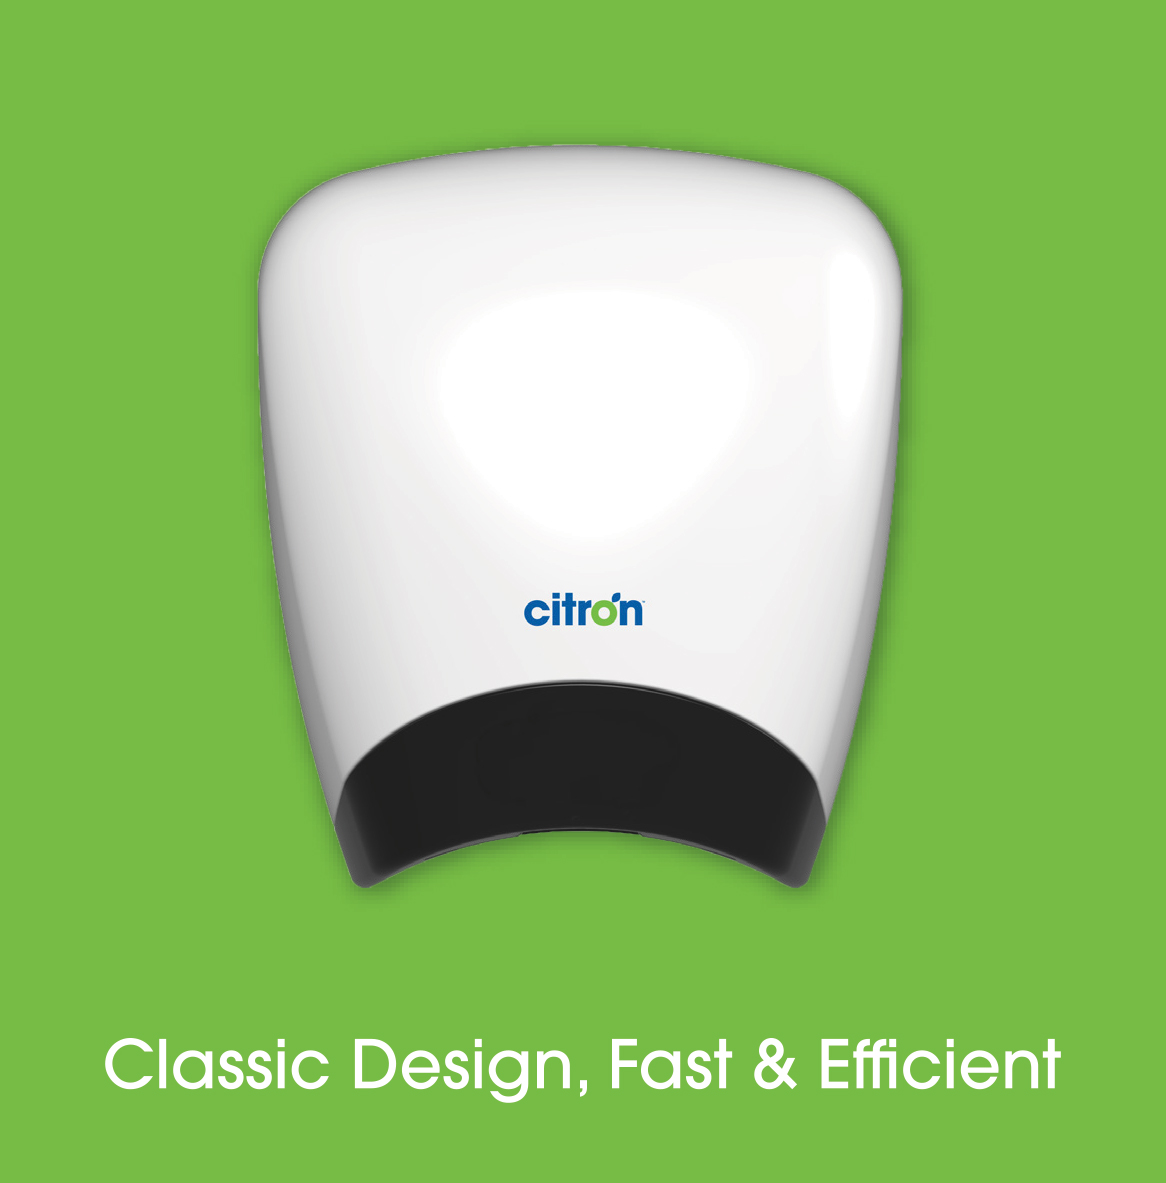 Automatic commercial hand dryers from Citron Hygiene: Airelle